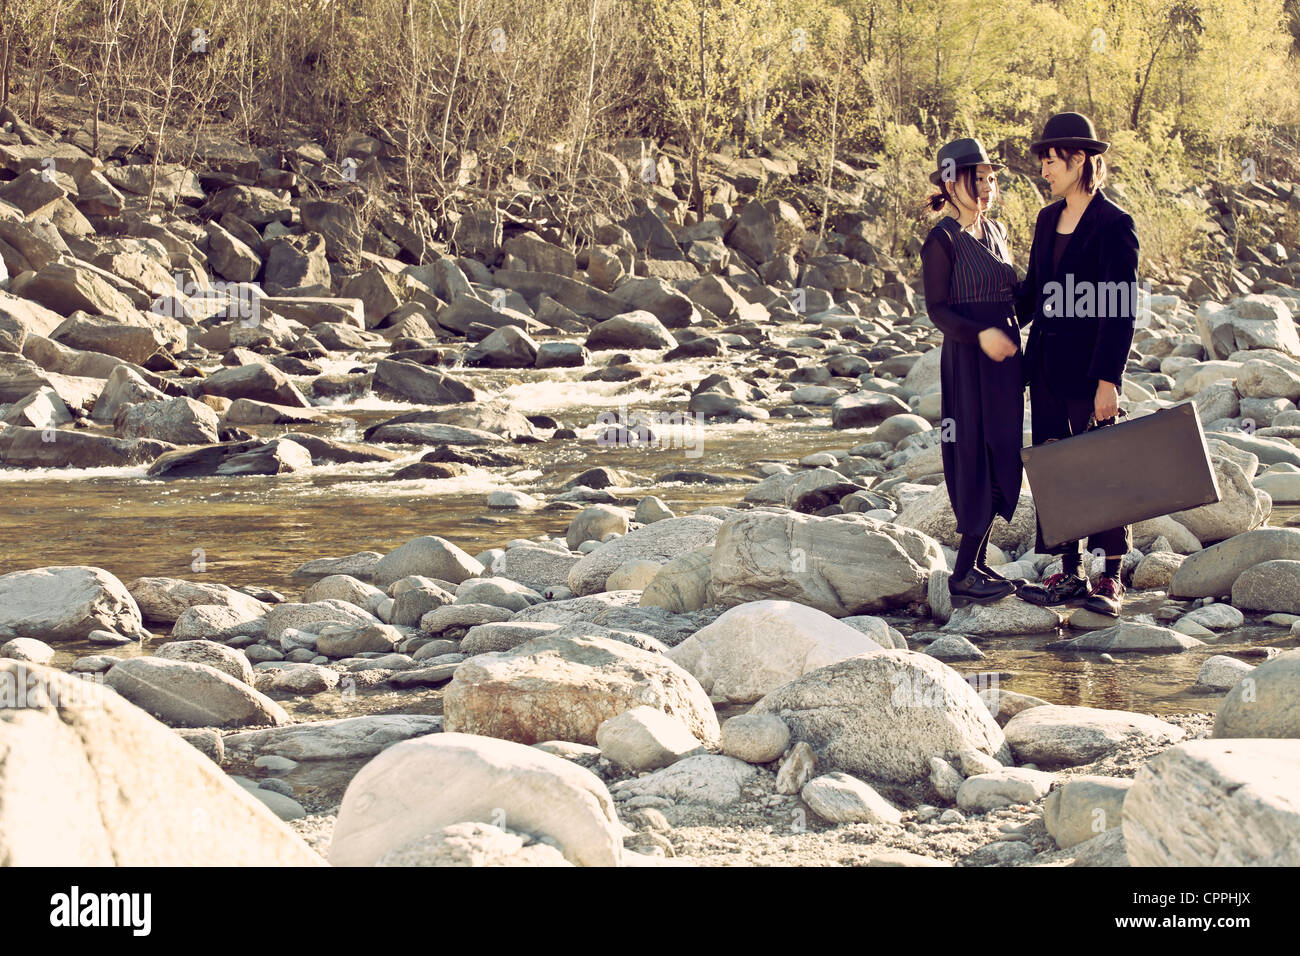 a man and a woman standing on rocks surrounded by a mountain stream - Stock Image